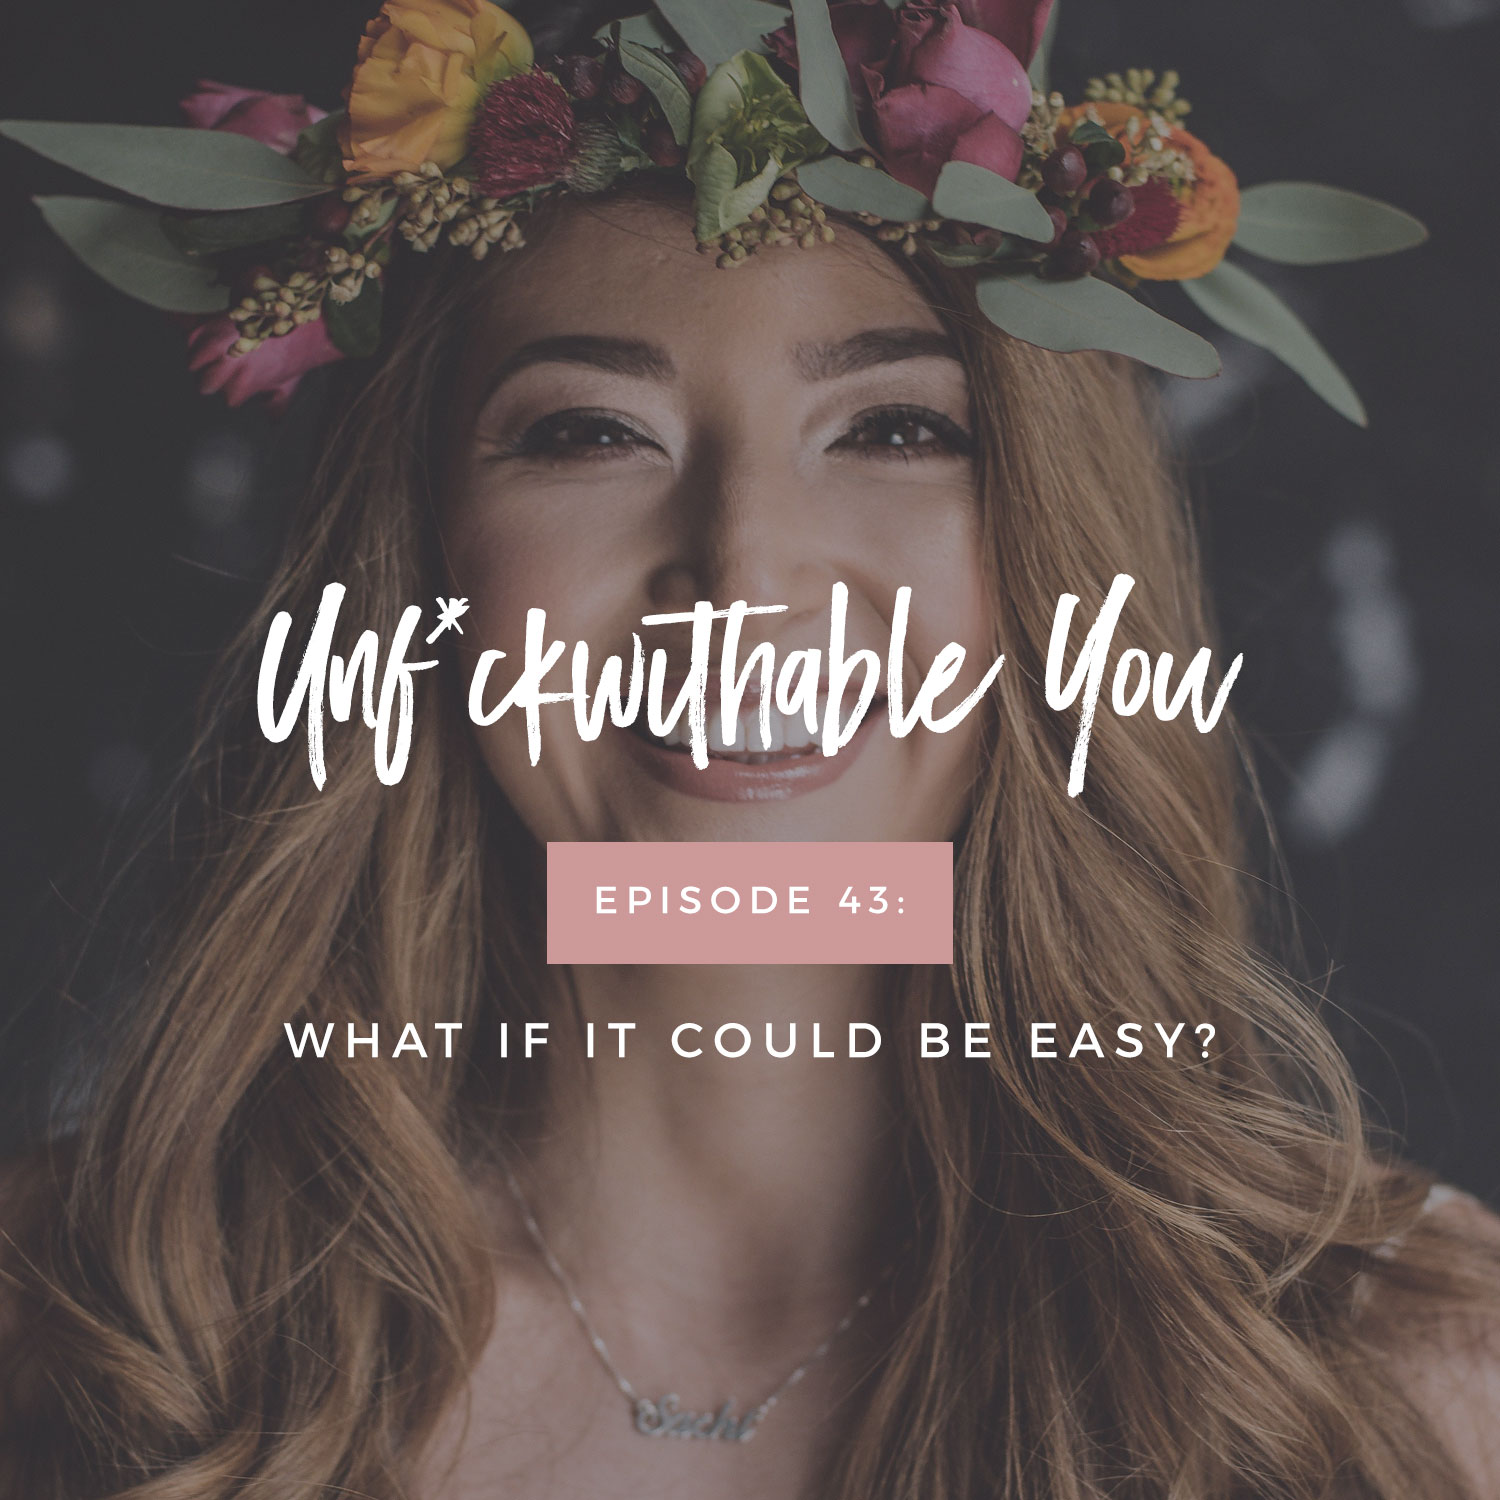 Unf*ckwithable You Episode 43: What If It Could Be Easy?